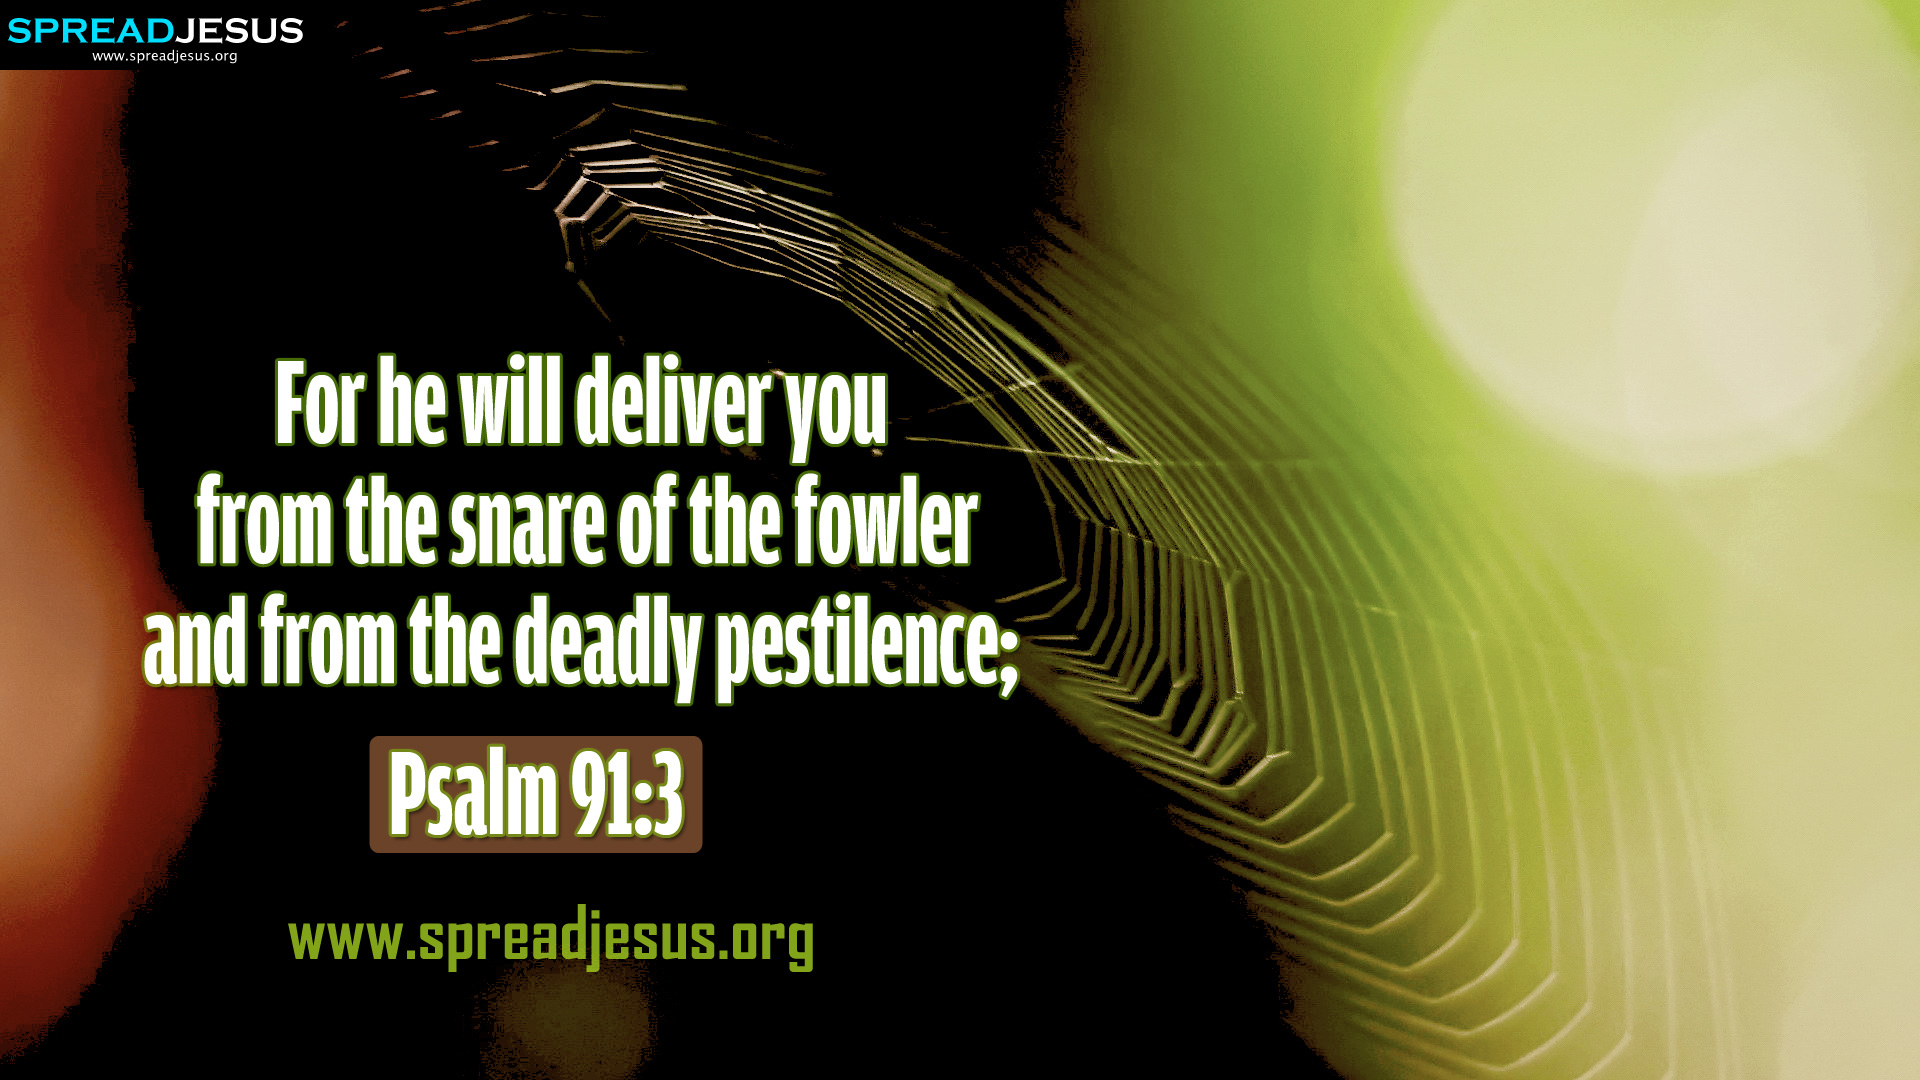 Psalm 913 BIBLE QUOTES HD WALLPAPERS FREE DOWNLOAD For he will 1920x1080